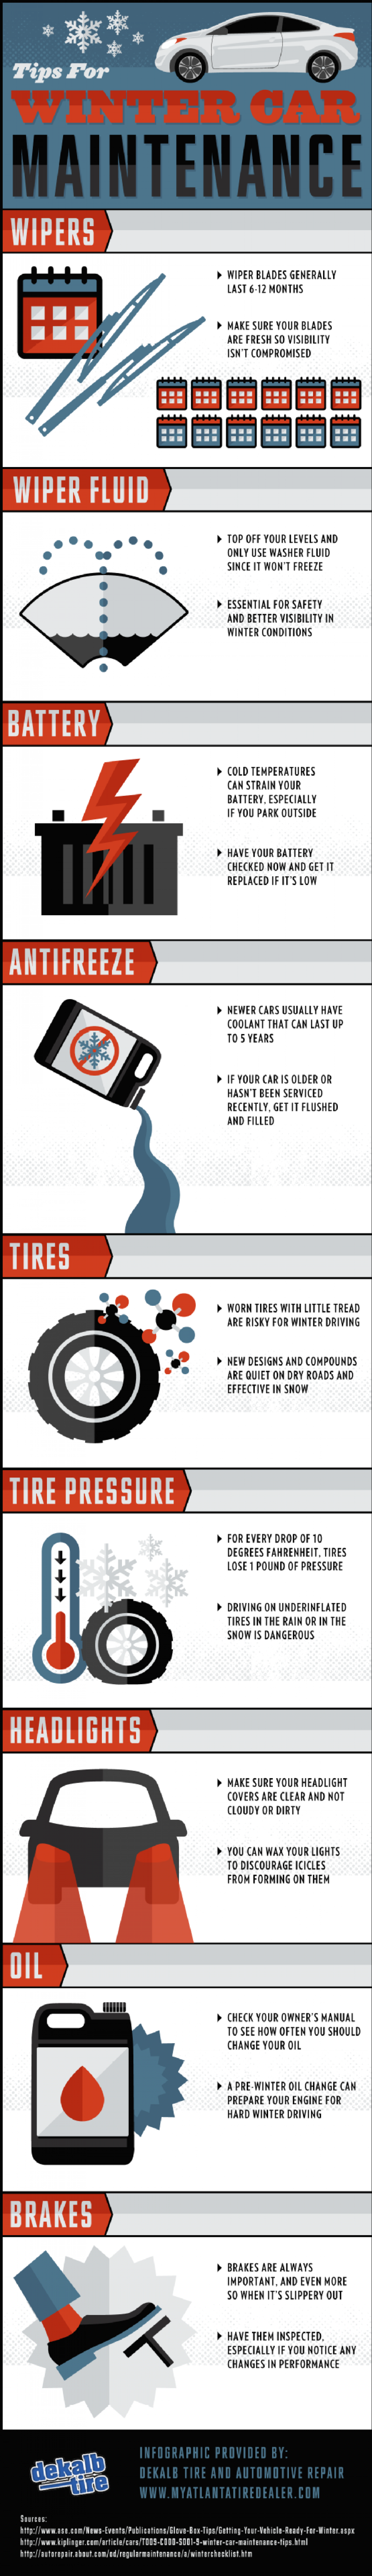 Tips for Winter Car Maintenance Infographic